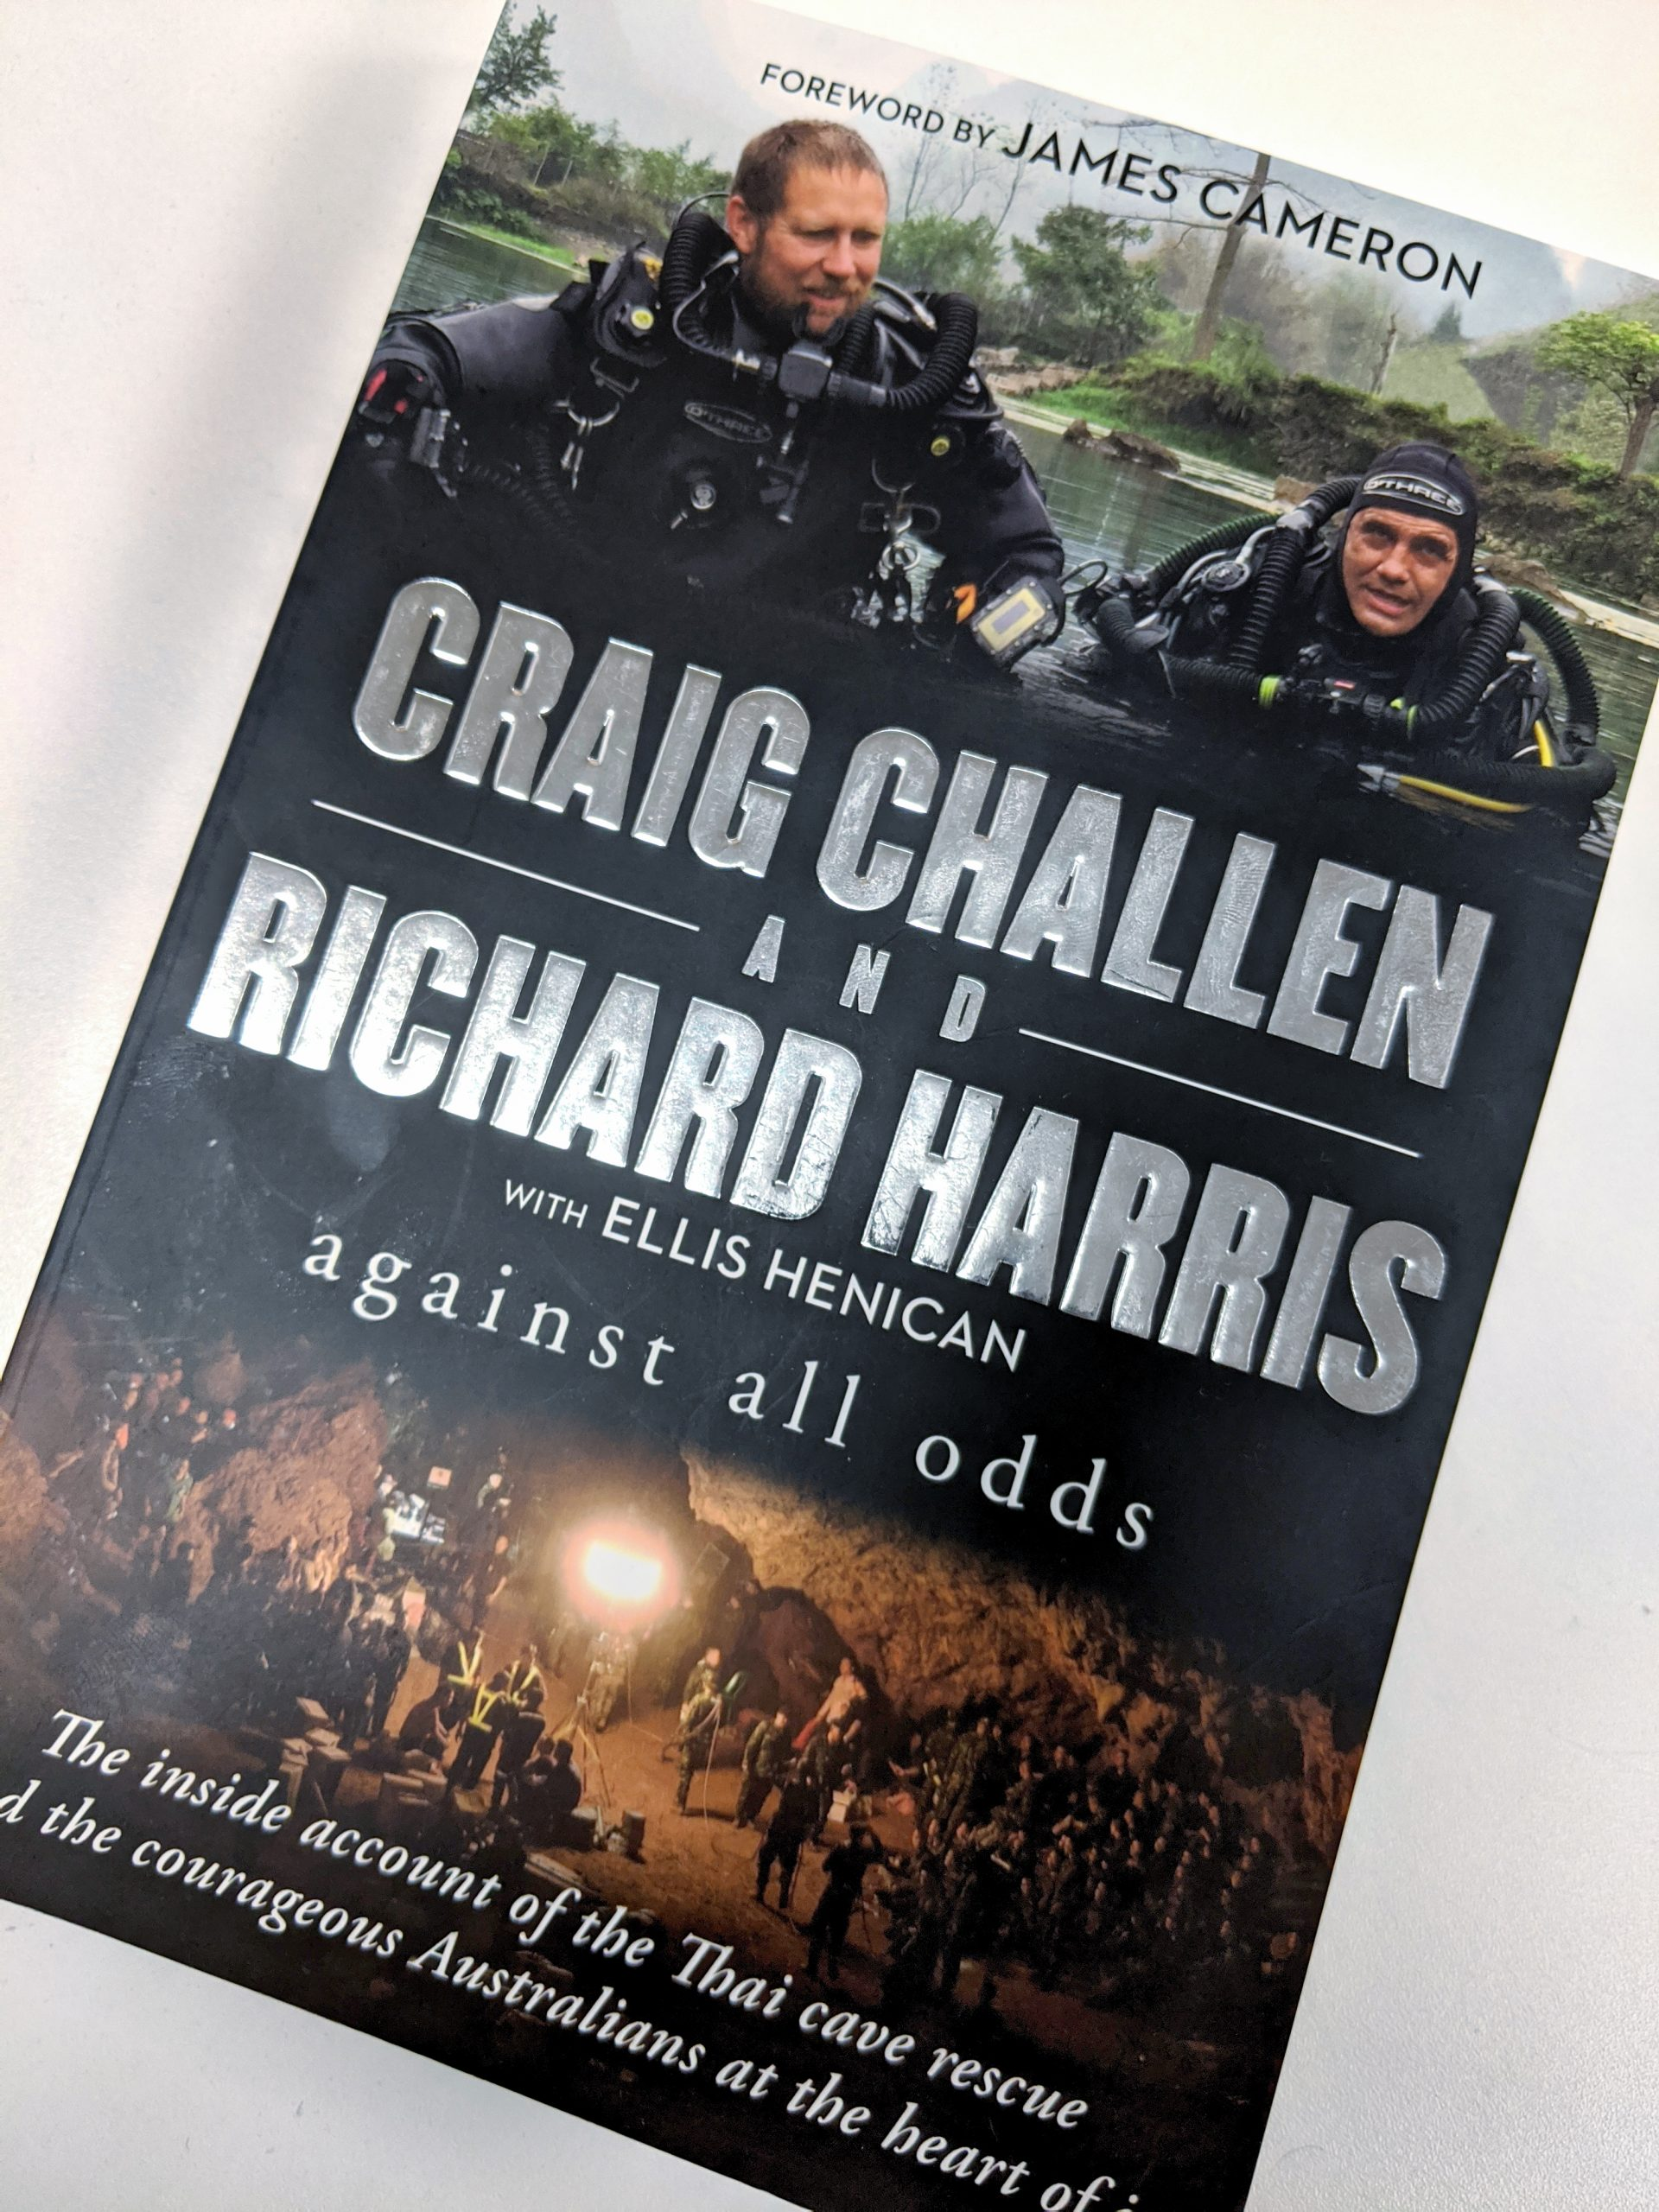 craig challen richard harris against all odds